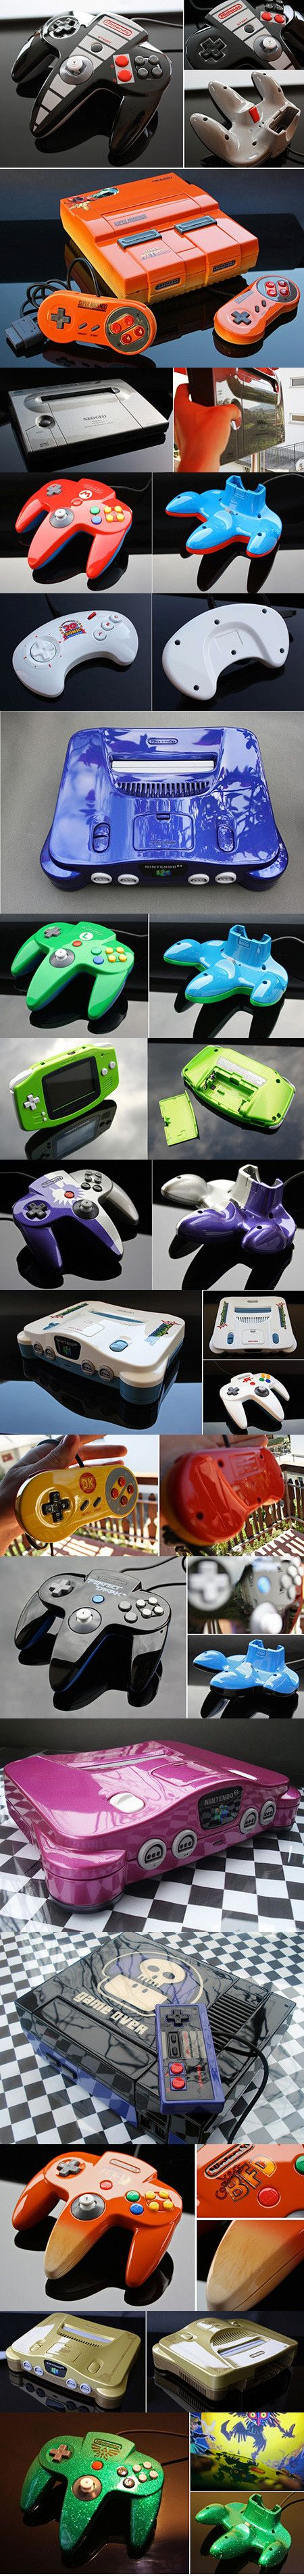 """DeviantArt user Zoki64 breaks away from the boring classic video game console designs by giving them fresh new paint jobs. LOVE the """"game over"""" NES system!"""